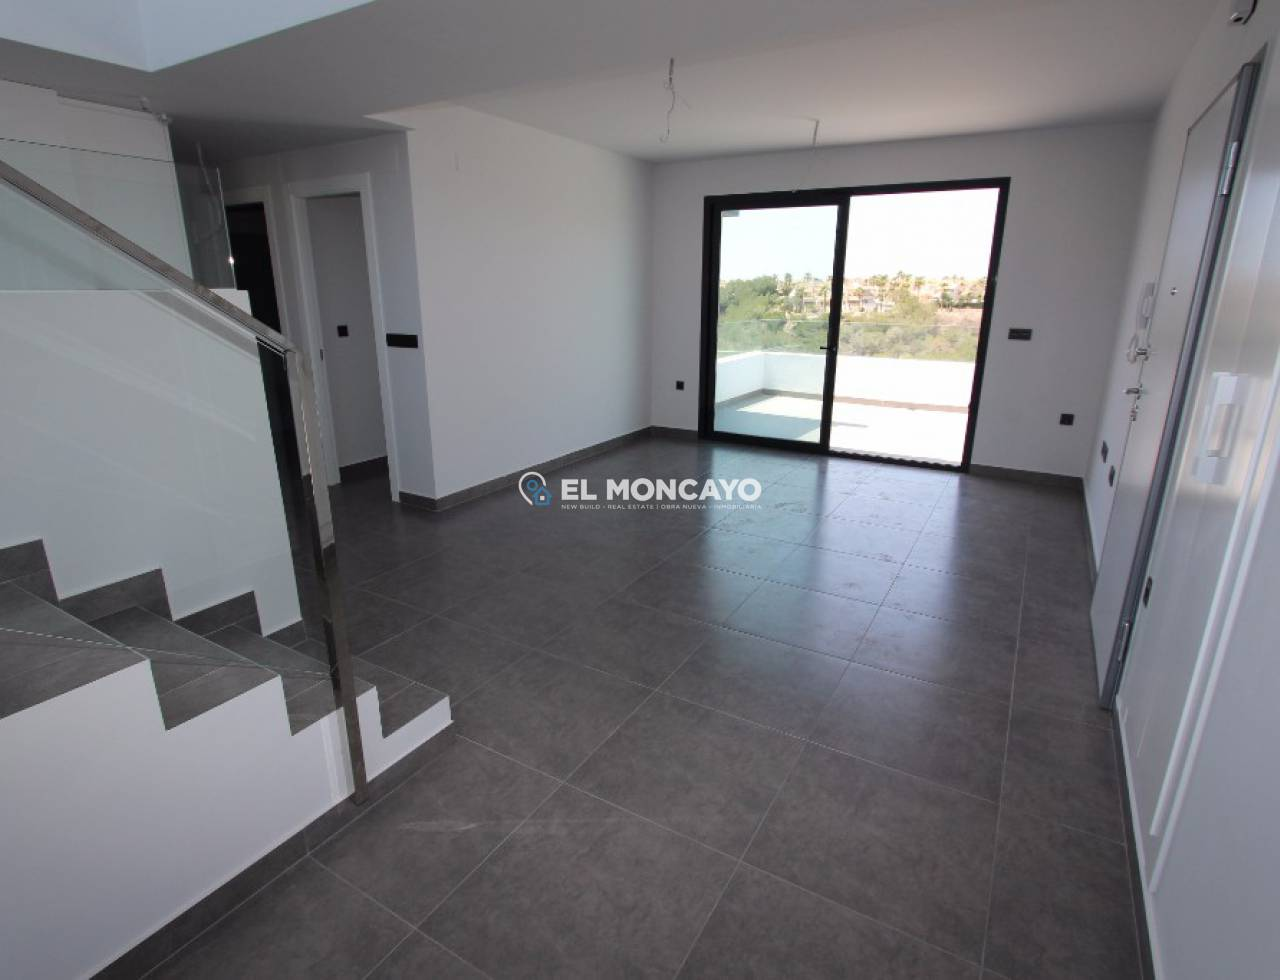 Penthouse duplex in Villamartín - Orihuela Costa (Costa Blanca South) 119 (10)